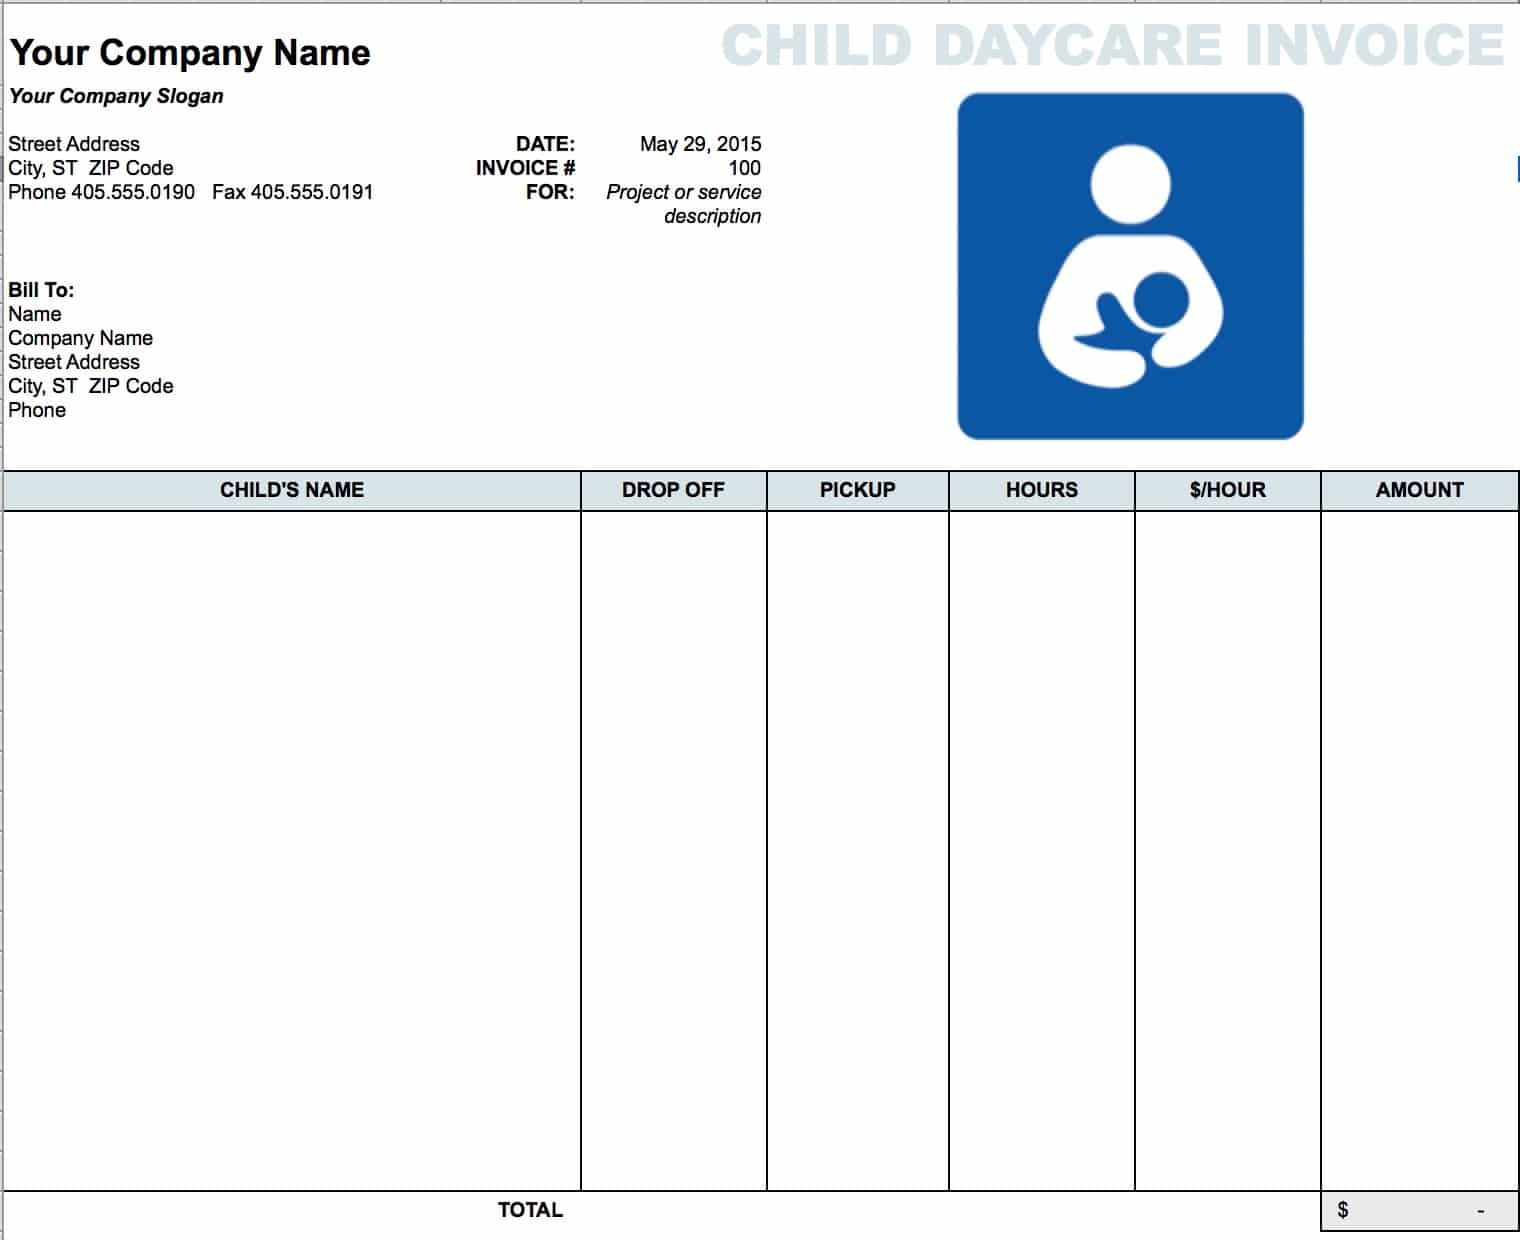 Free Daycare Child Invoice Template Excel PDF Word Doc - How to make invoice in excel for service business